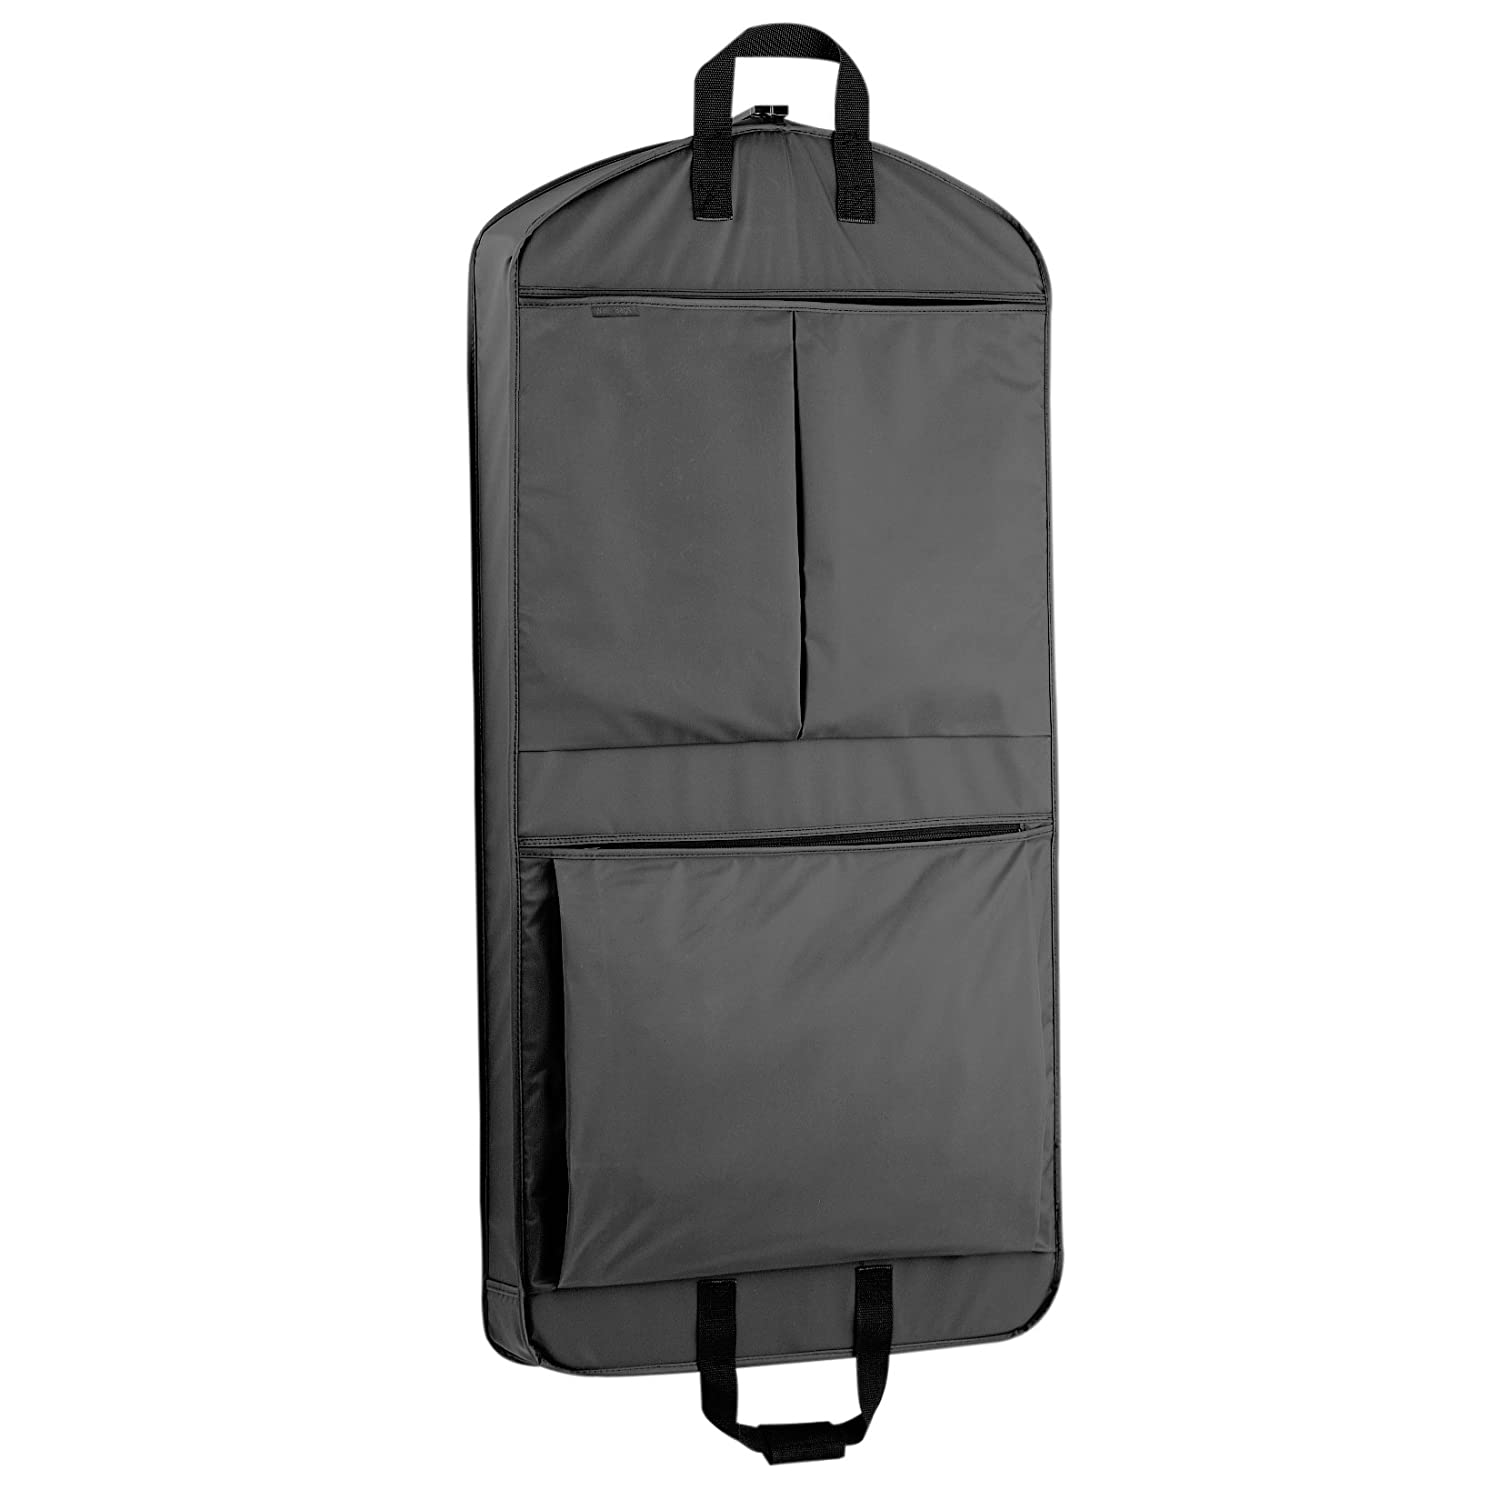 Amazon Best Sellers: Best Garment Bags